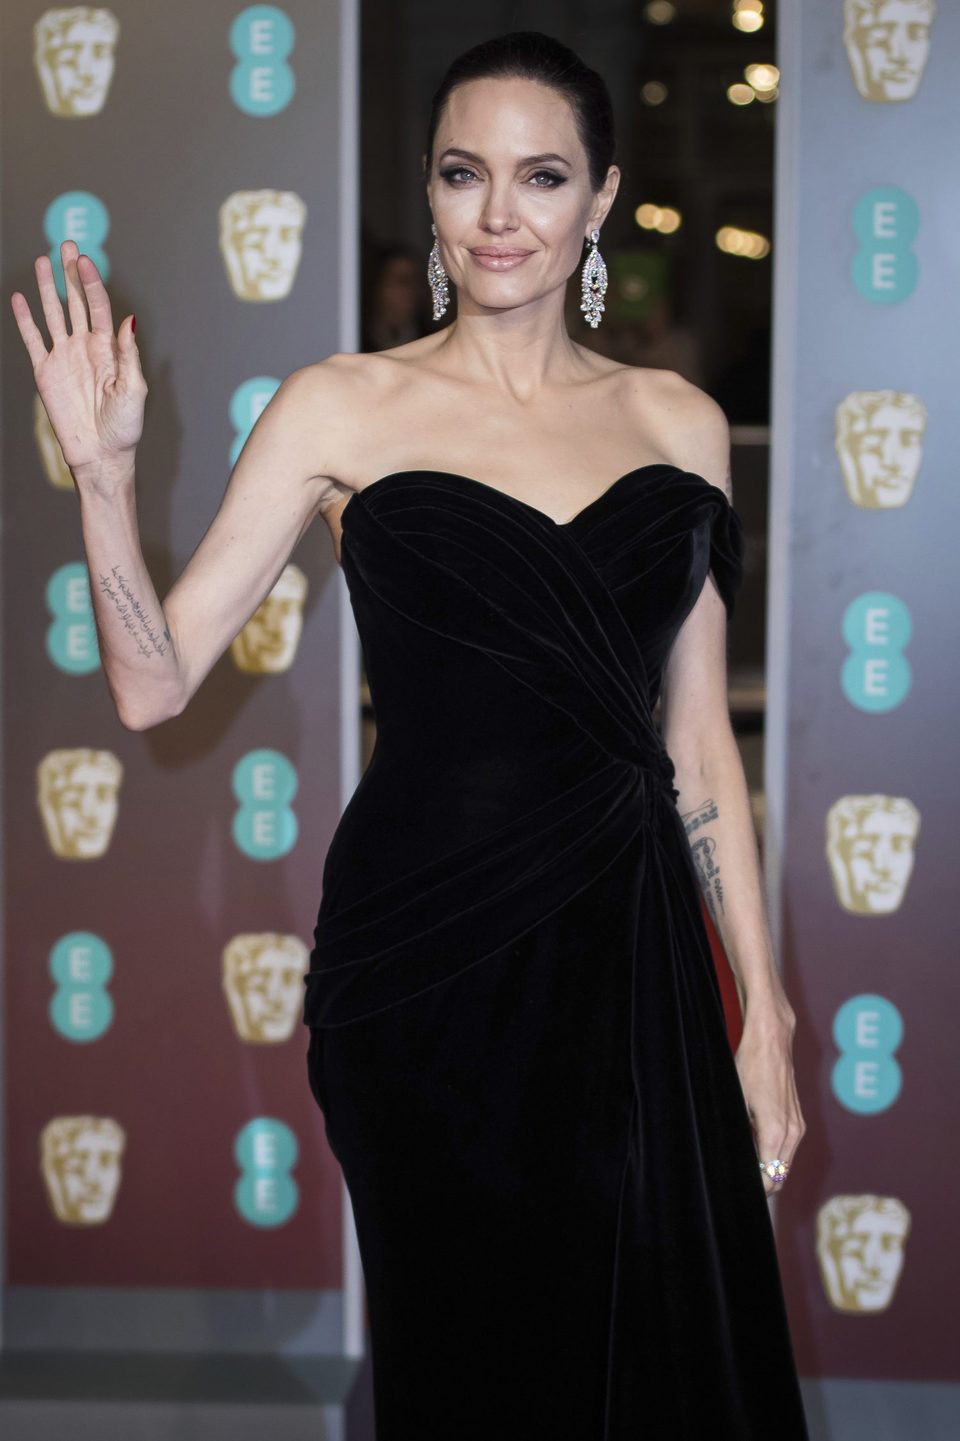 Angelina Jolie at the BAFTA Awards' 2018 red carpet